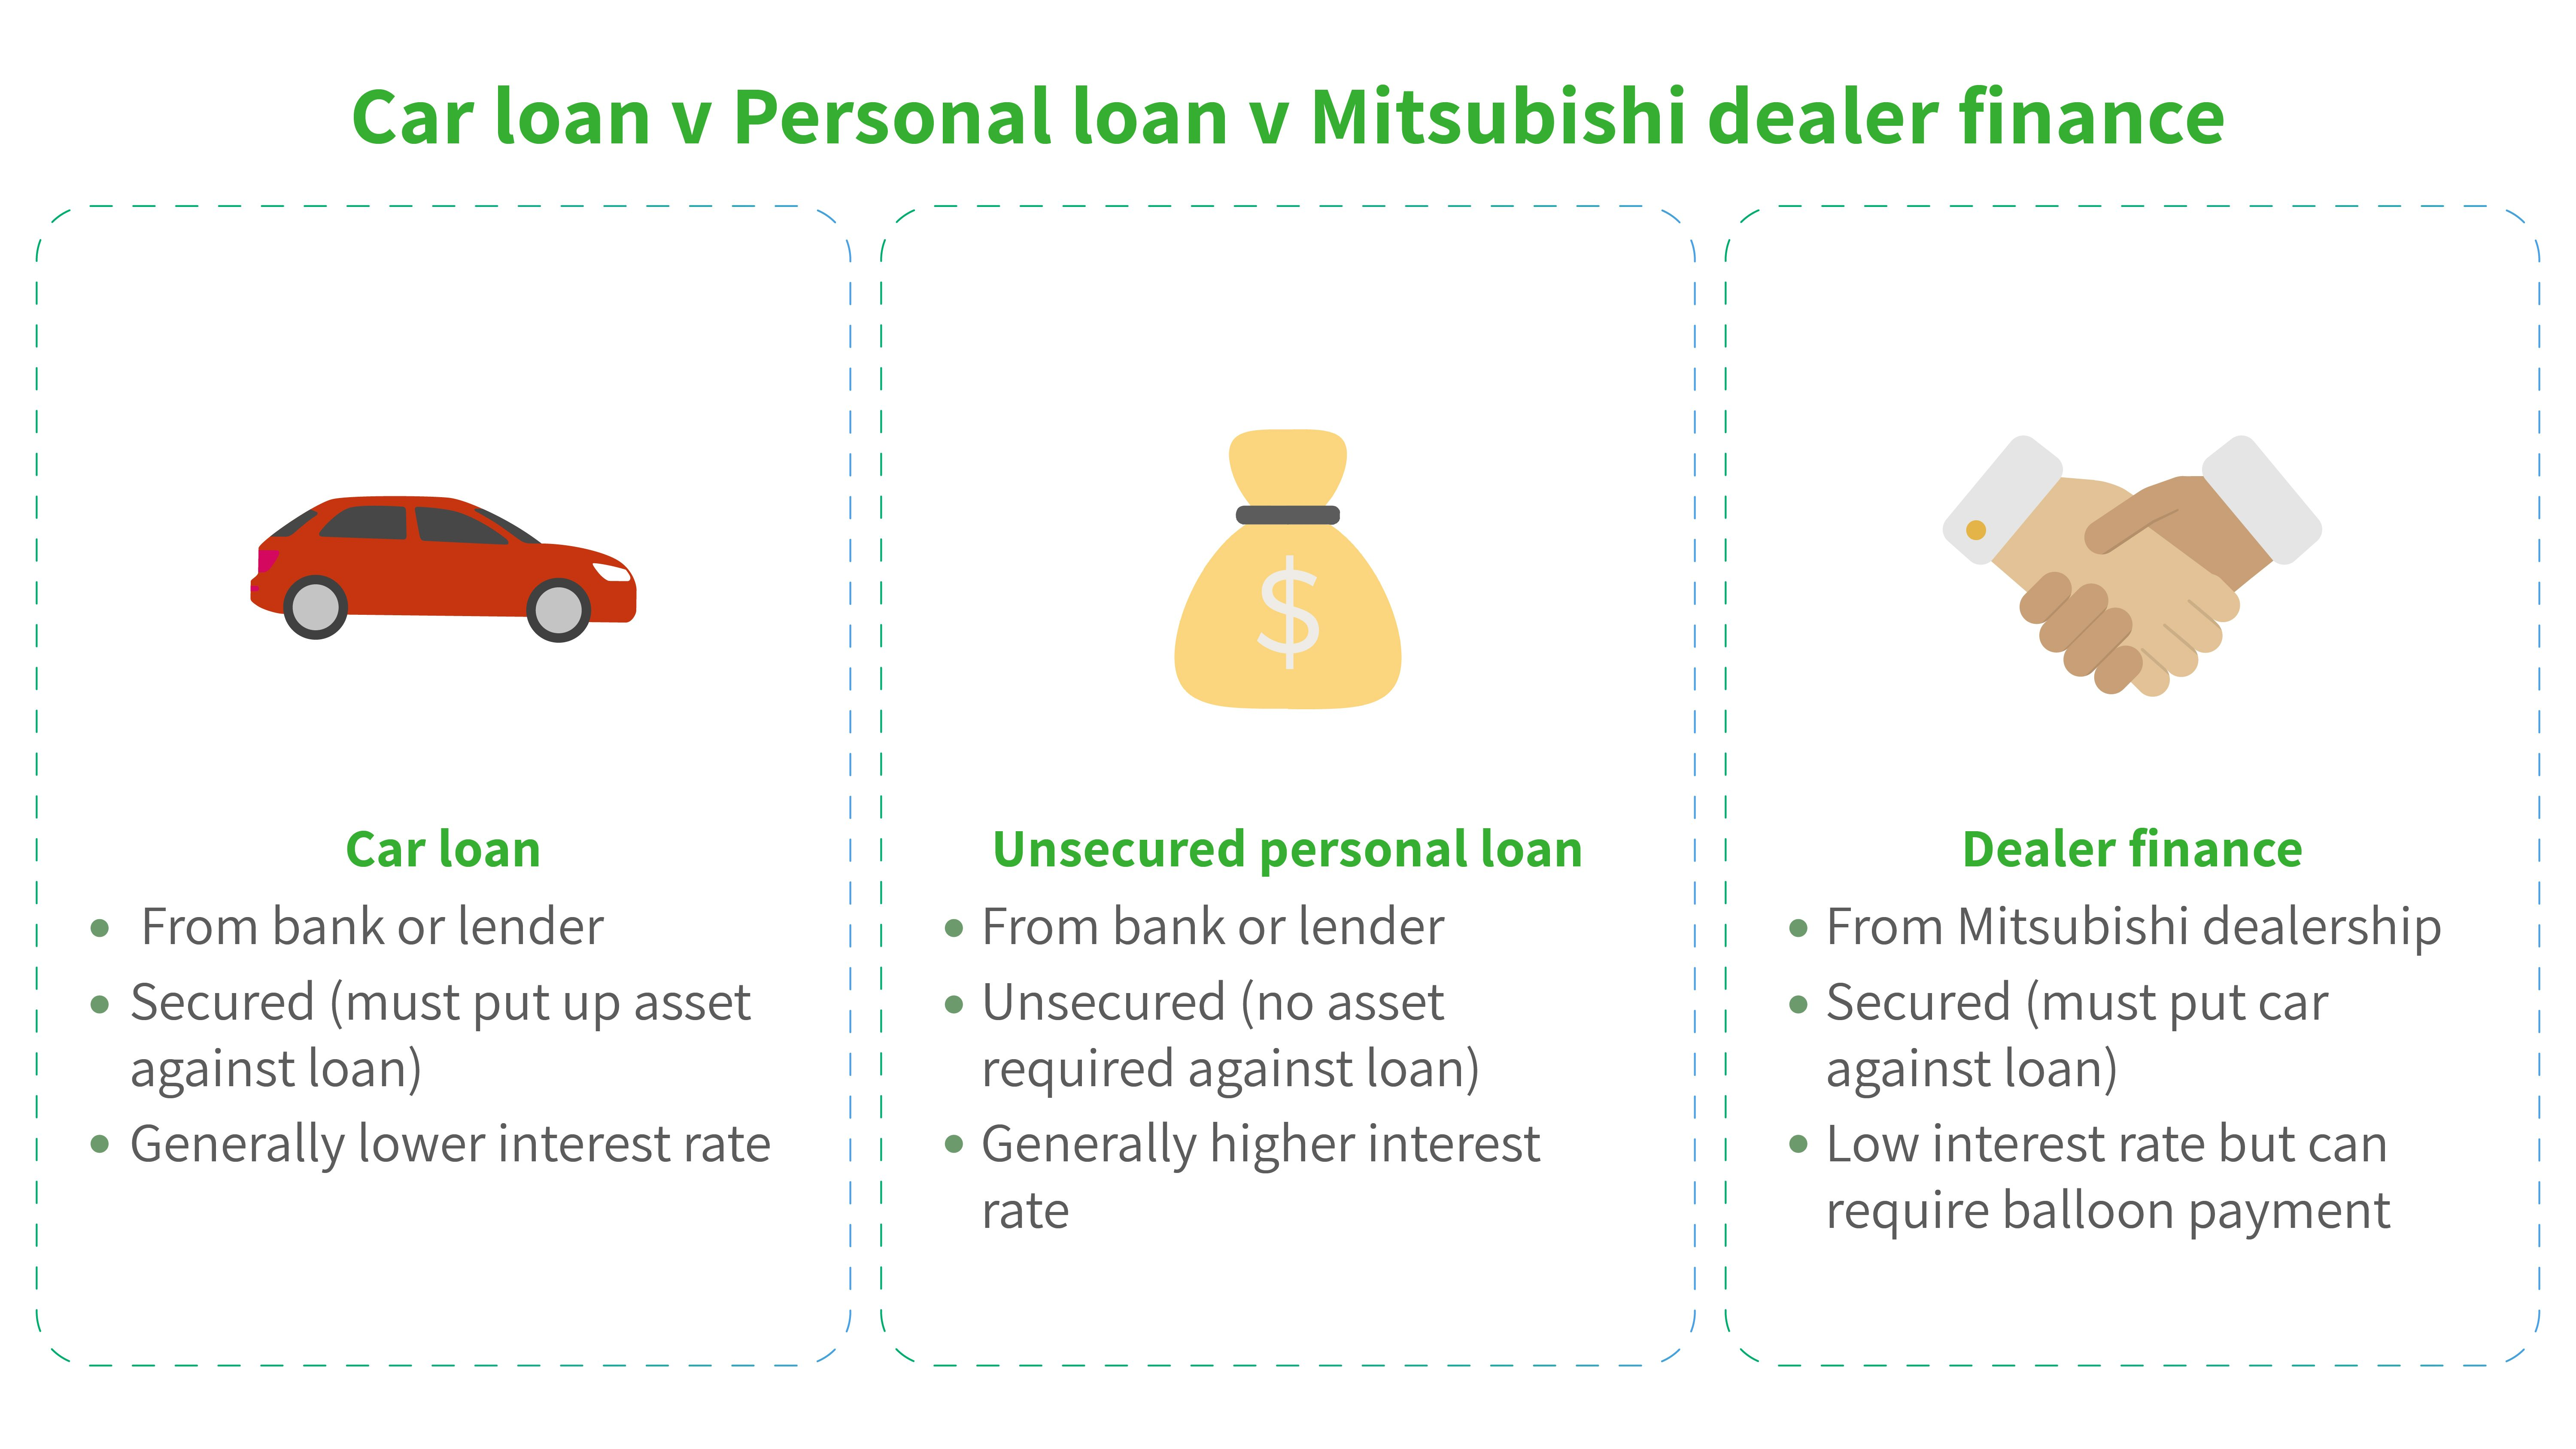 infographic-explaining-car-loan-personal-loan-and-dealer-finance